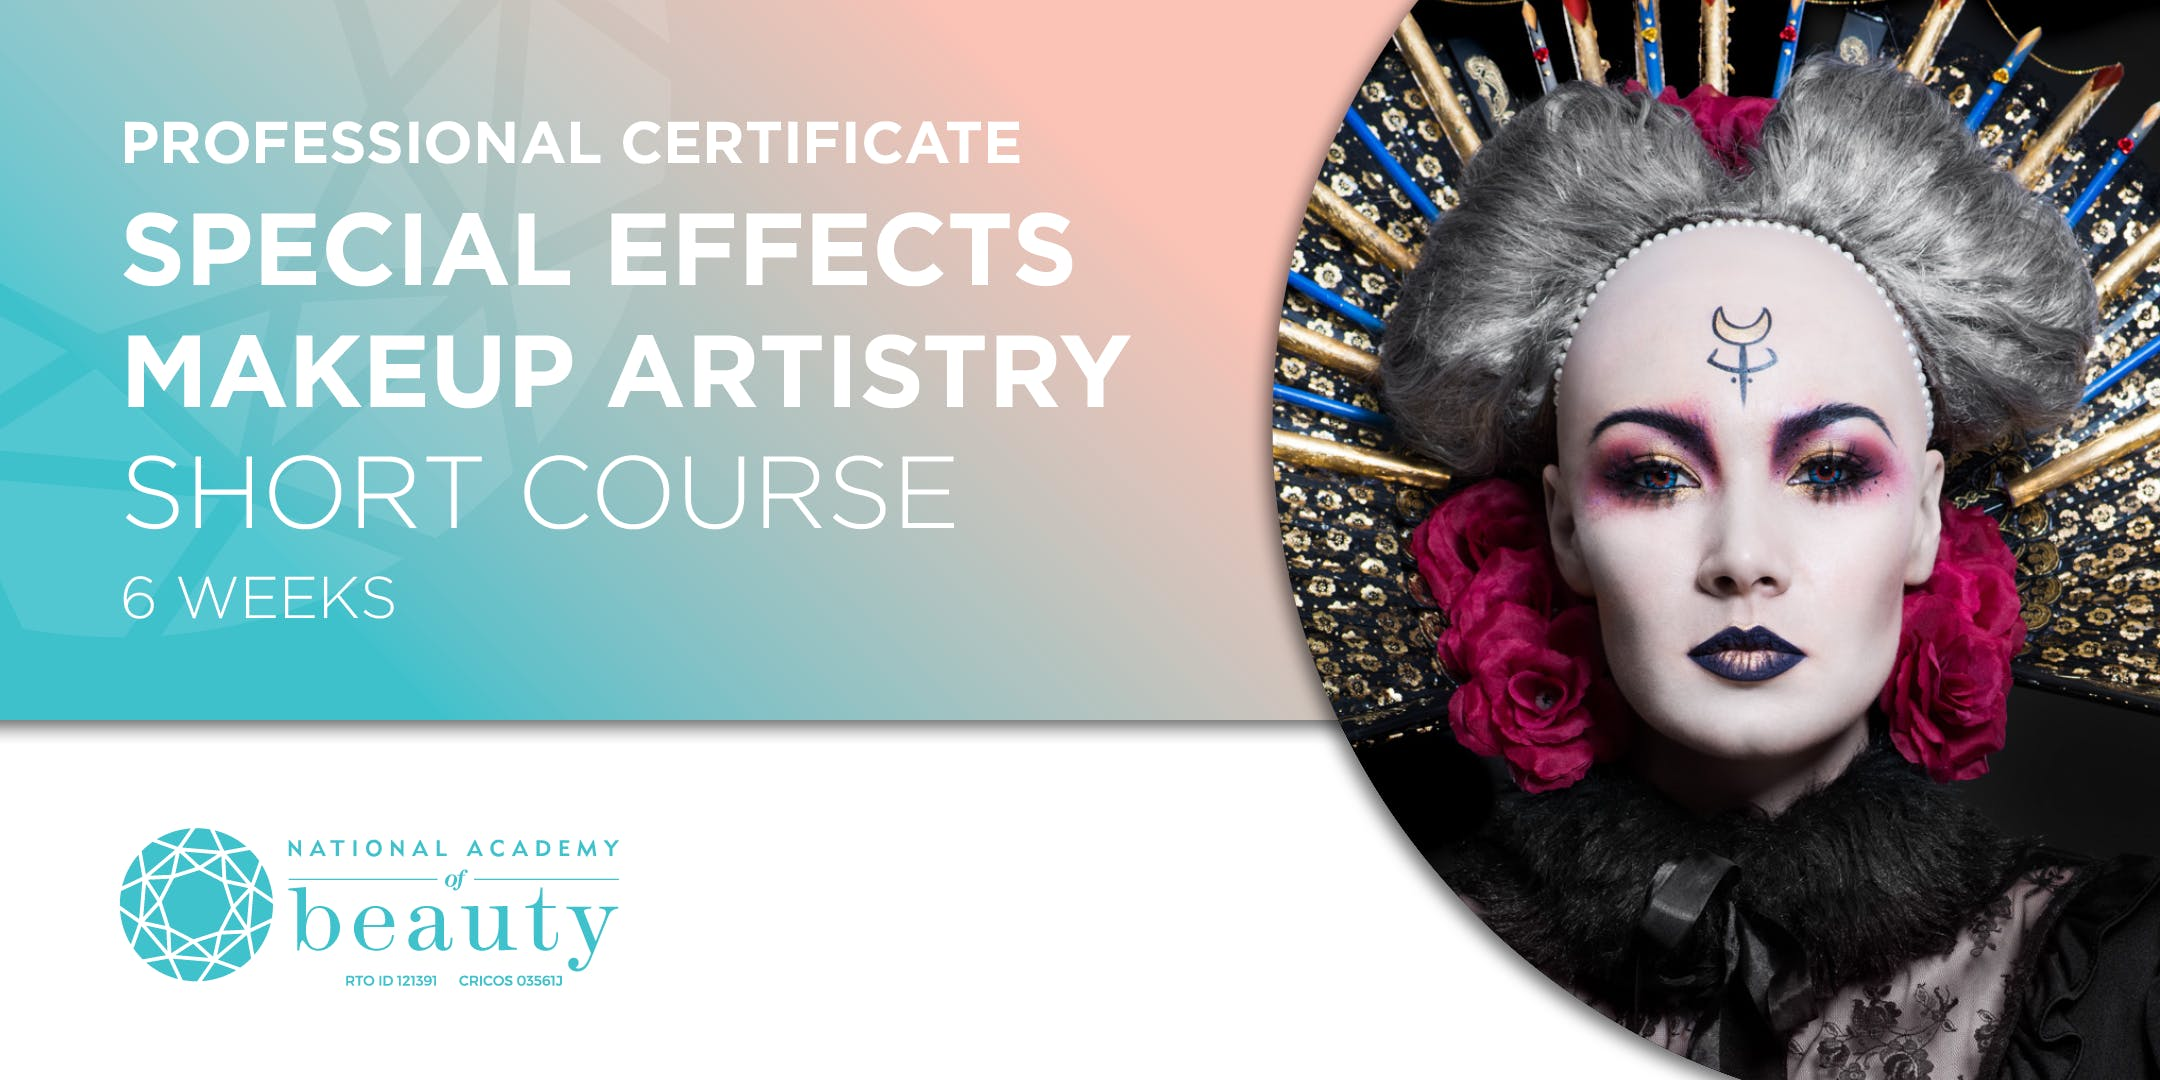 Professional Certificate Special Effects Makeup Artistry Course 6 Weeks Melbourne